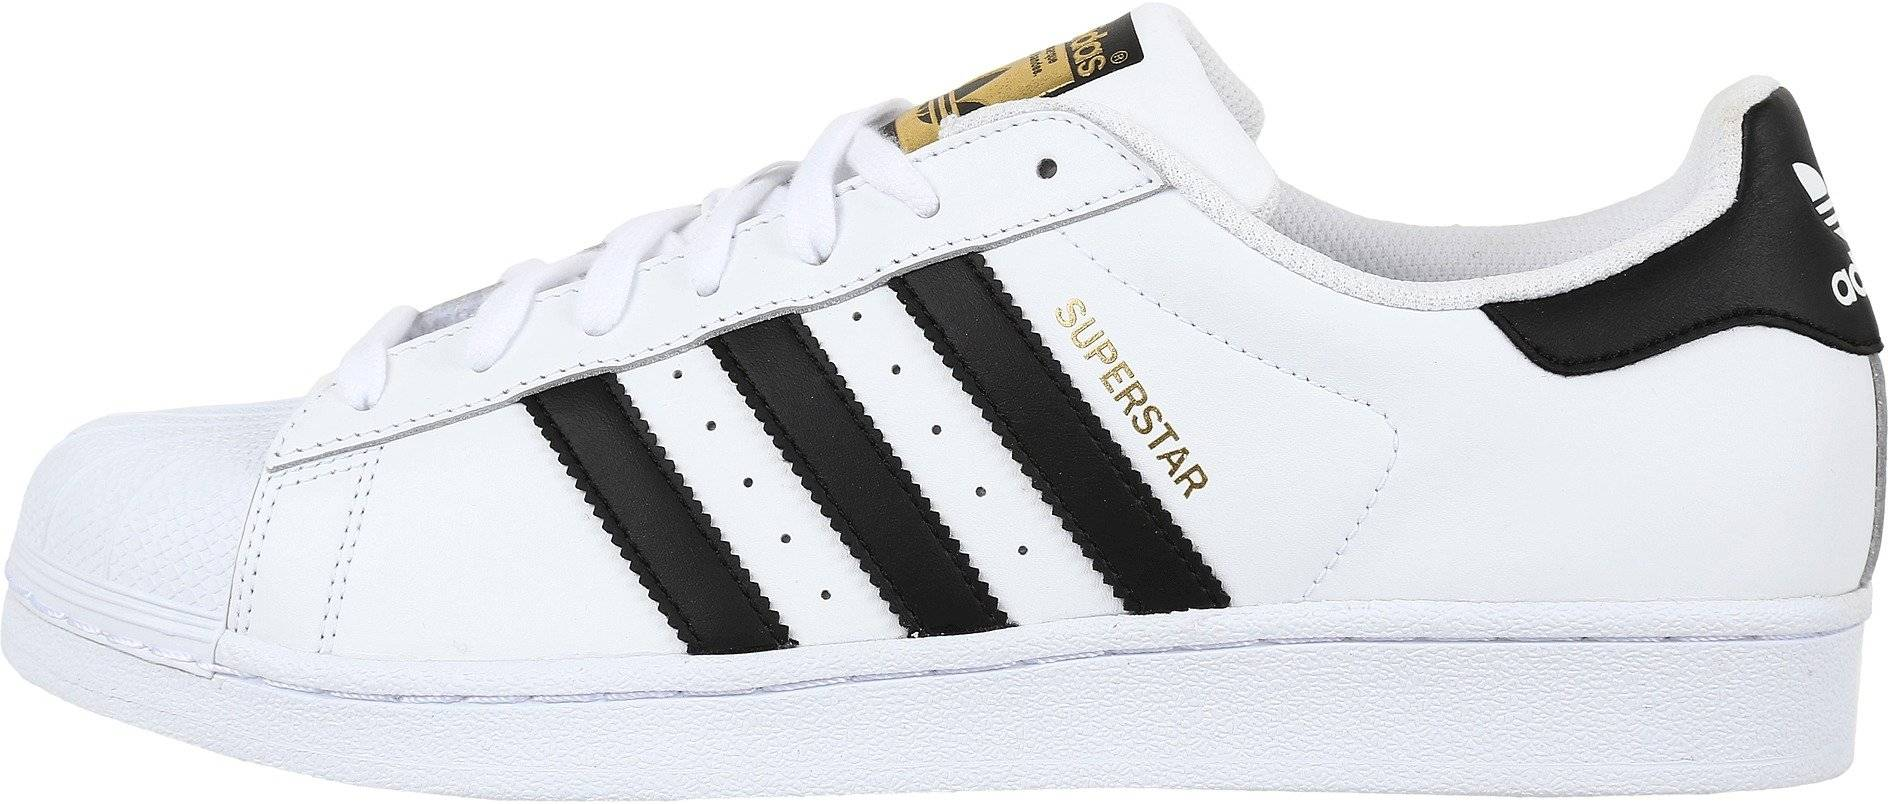 idioma déficit neumático  Adidas Superstar sneakers in 30+ colors (only $18) | RunRepeat